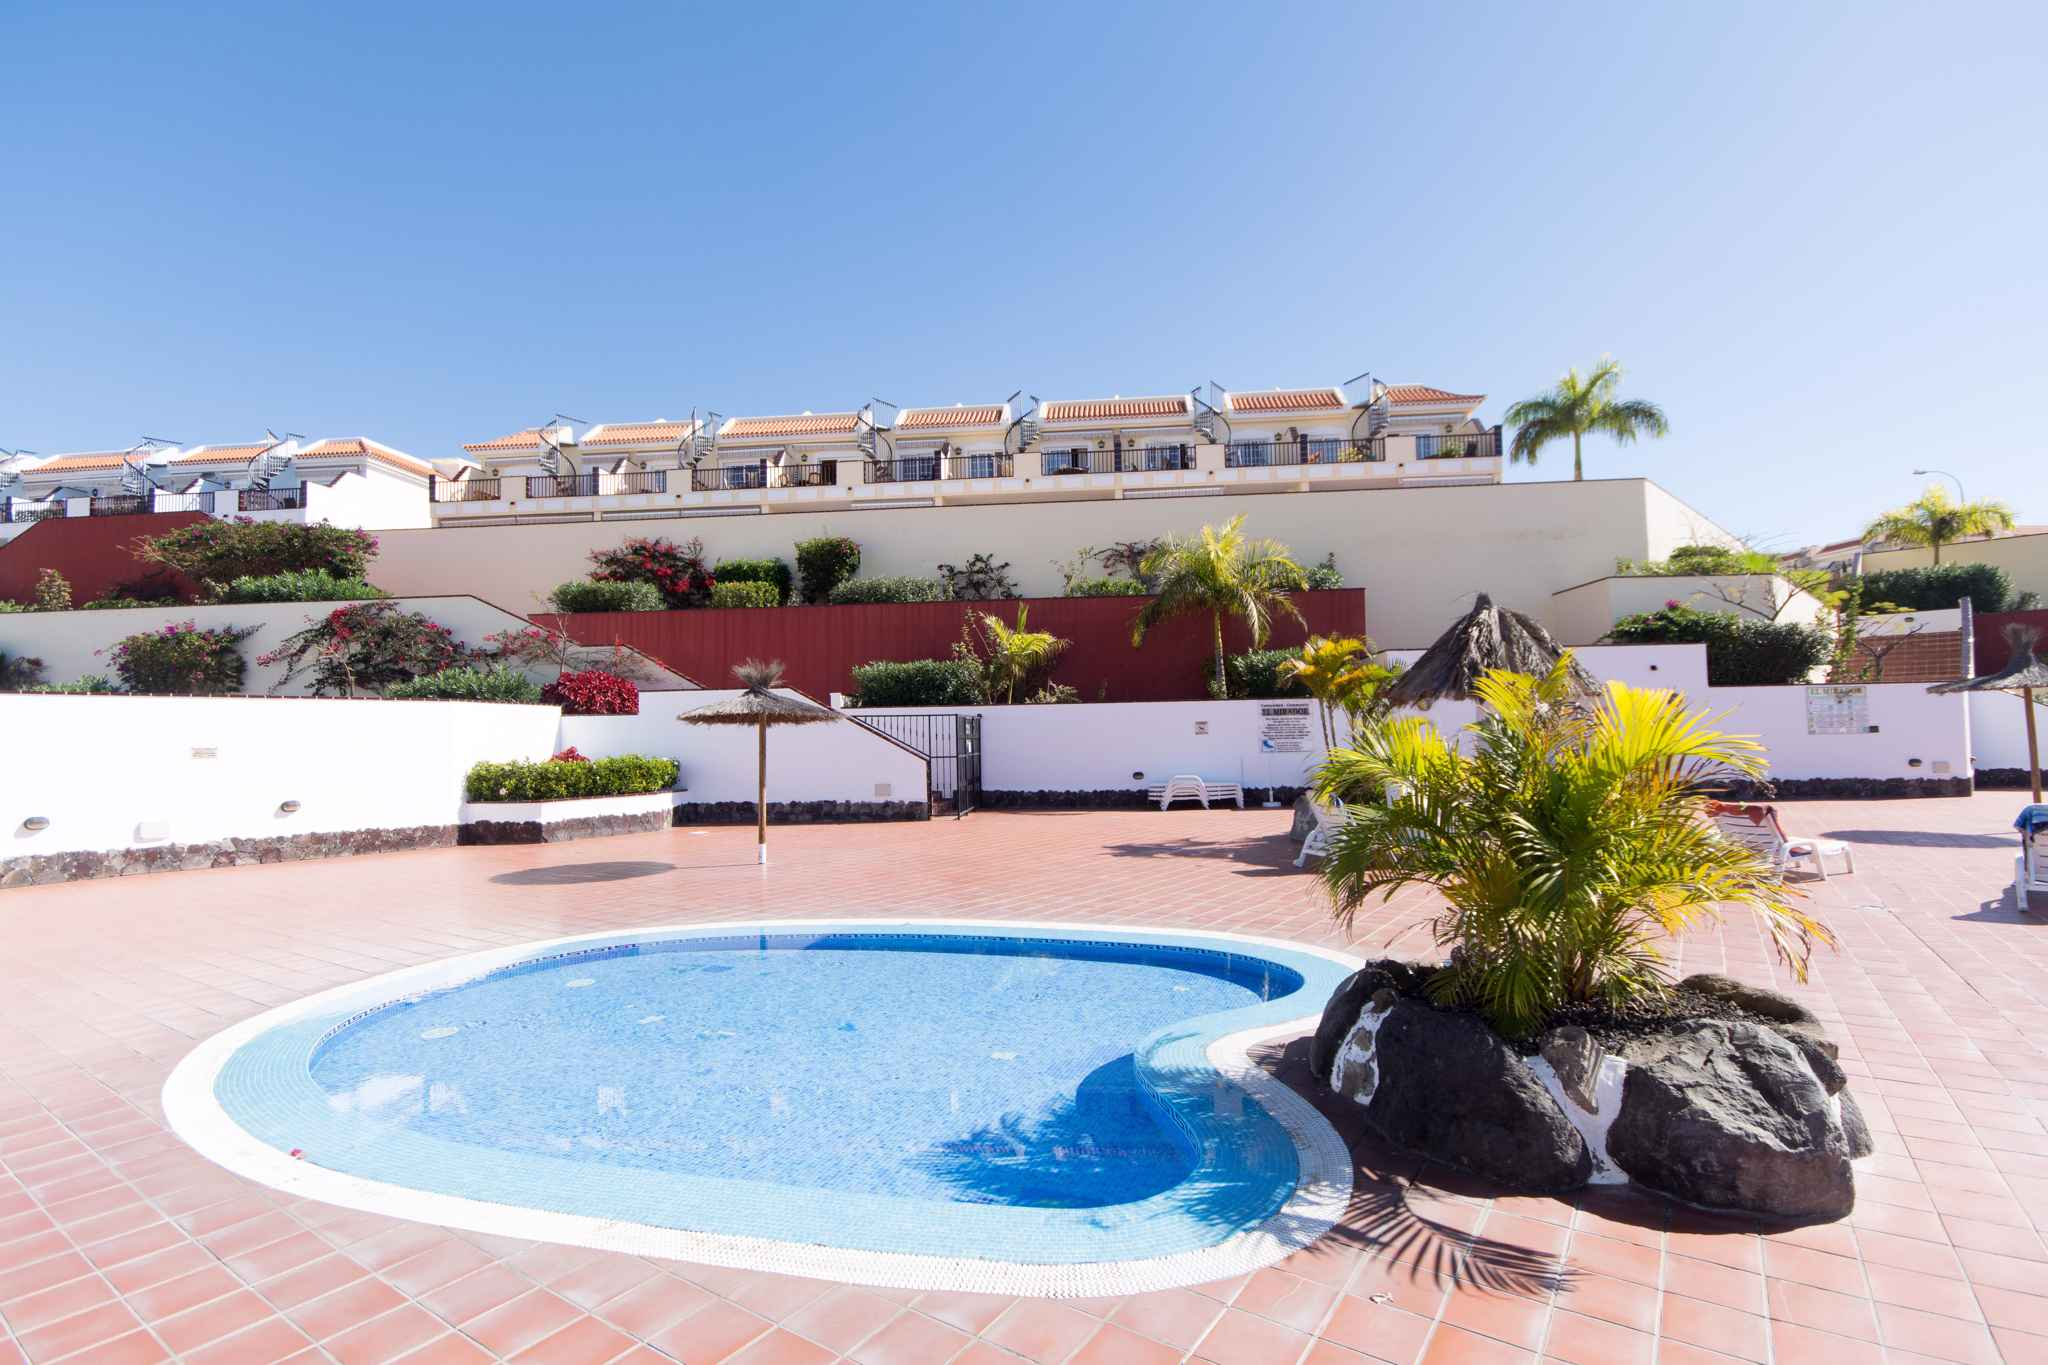 Holiday apartment mit Pool in Ferienanlage (2382979), Los Cristianos, Tenerife, Canary Islands, Spain, picture 7